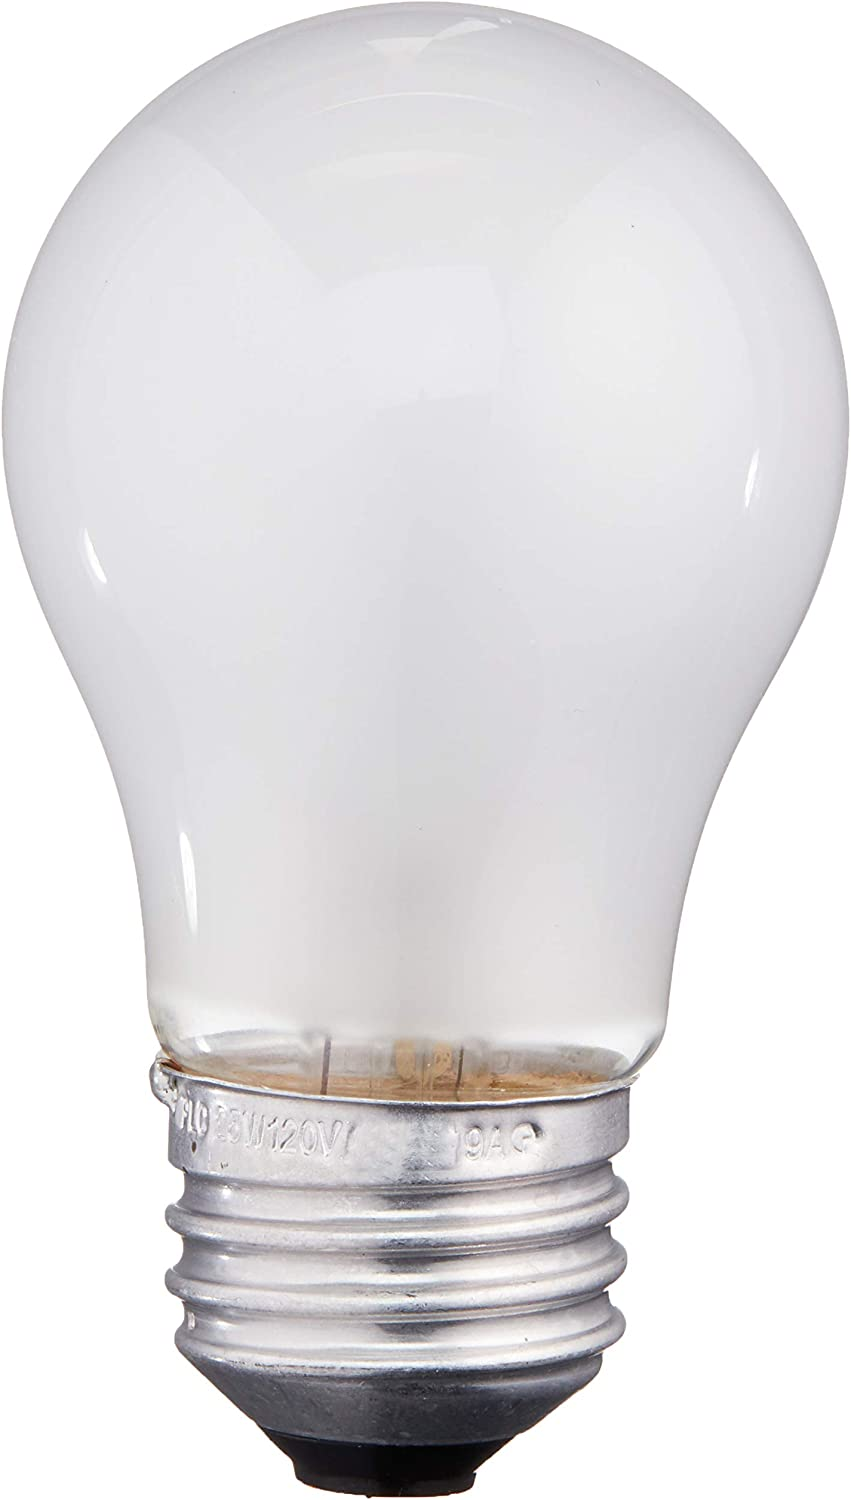 Philips LED 470385 Incandescent Light Bulb, White, 6 Piece